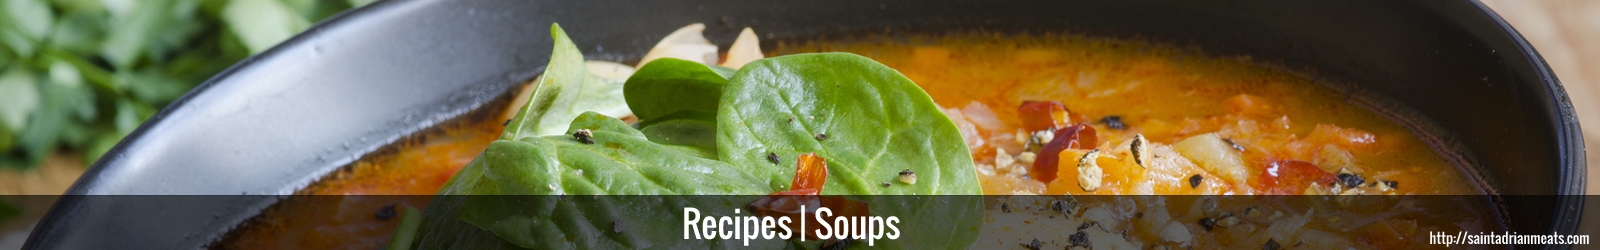 Soup Recipes | Saint Adrian Meats & Sausages | Lebanon, IN